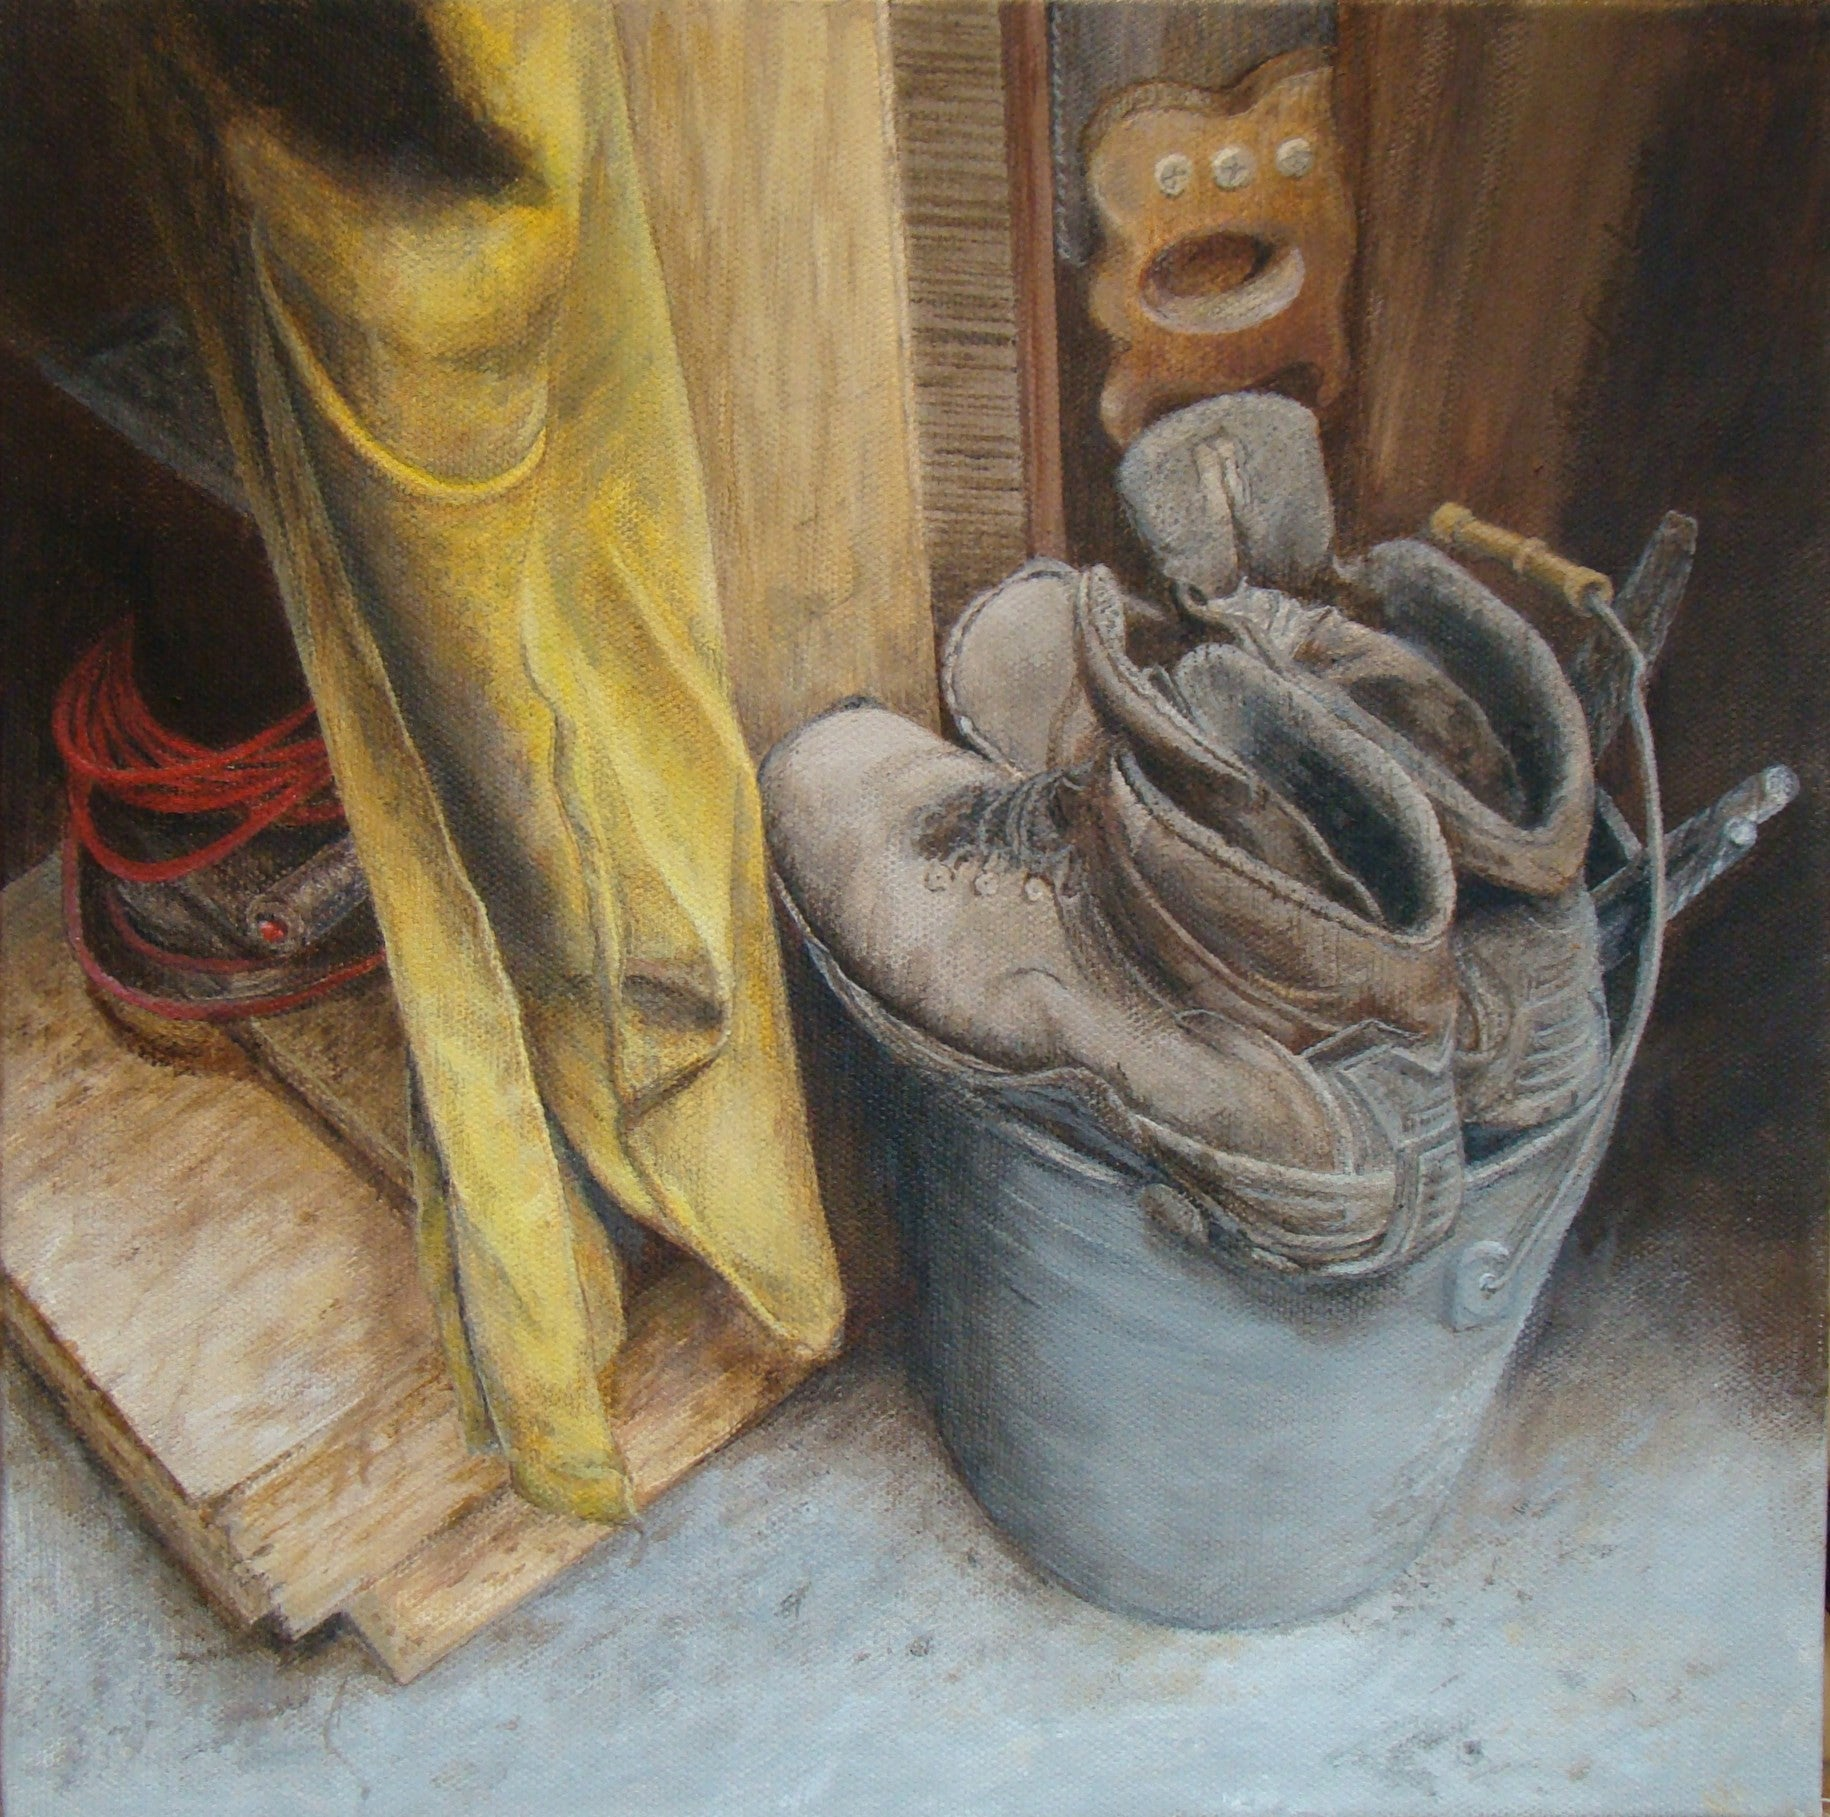 Joann Sybil Lawson - Brownlee's Boots